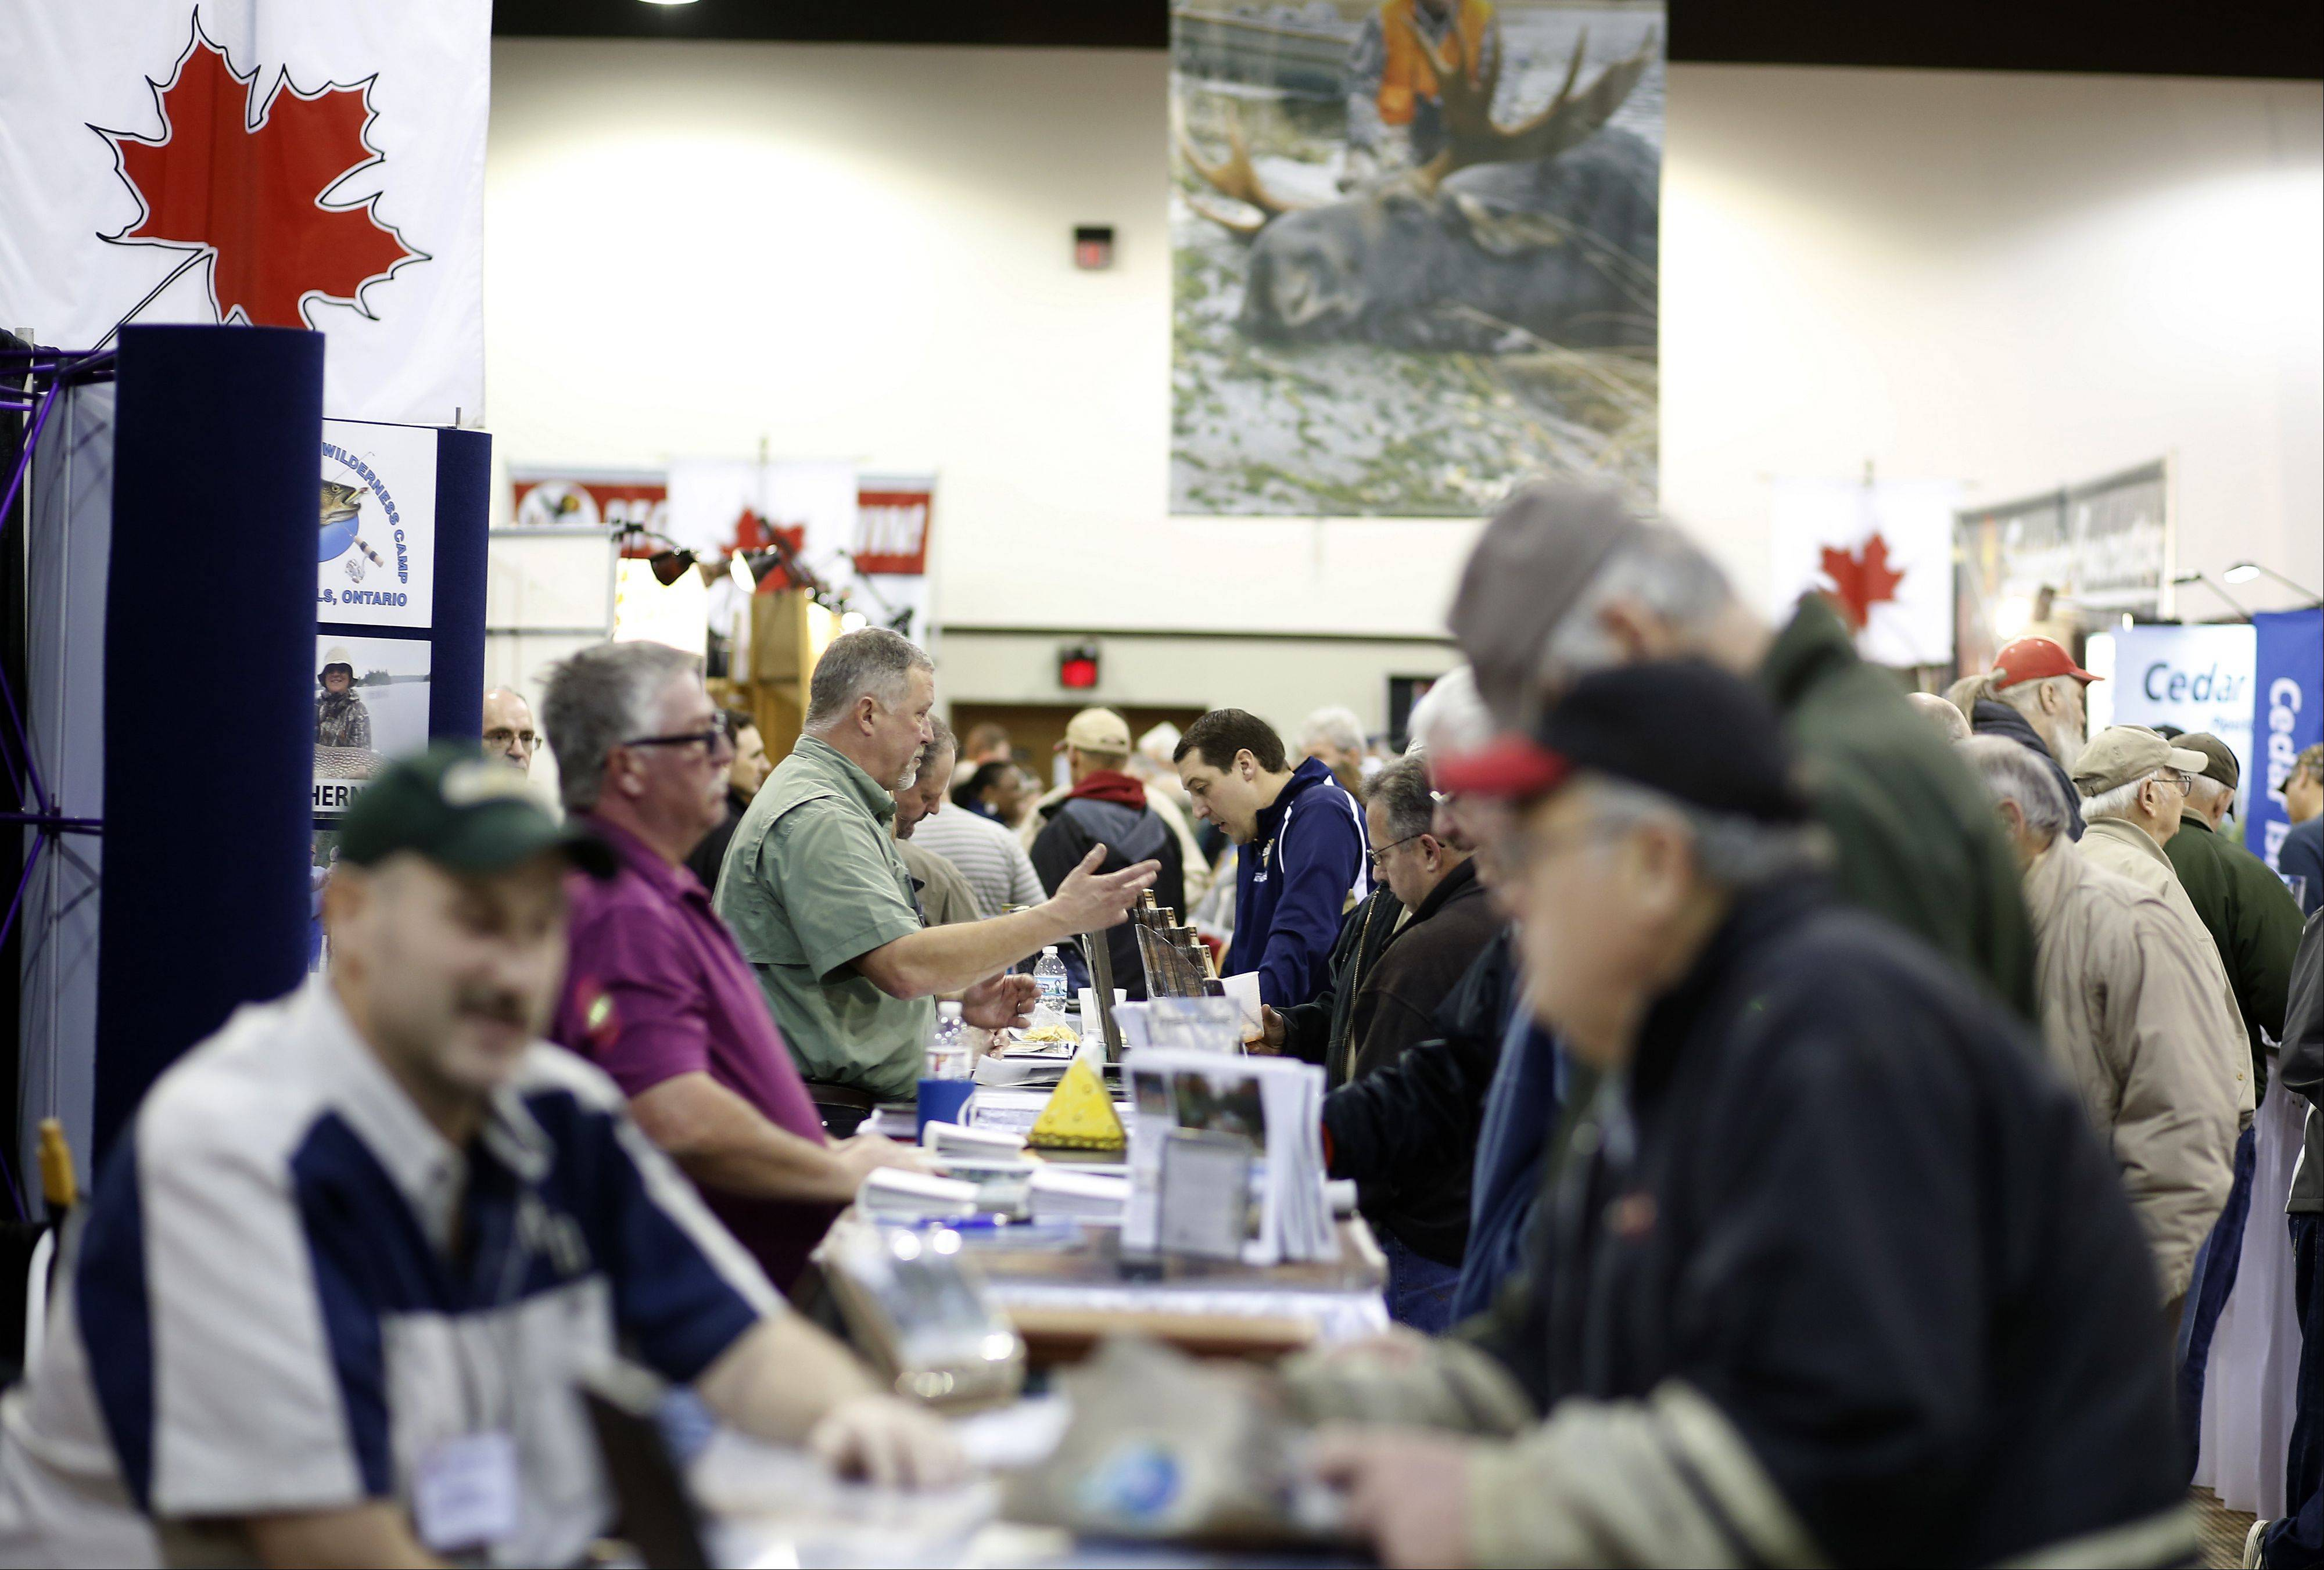 Several thousand people will visit the 132 booths at the annual All-Canada Show at Pheasant Run in St. Charles, which runs through Sunday.